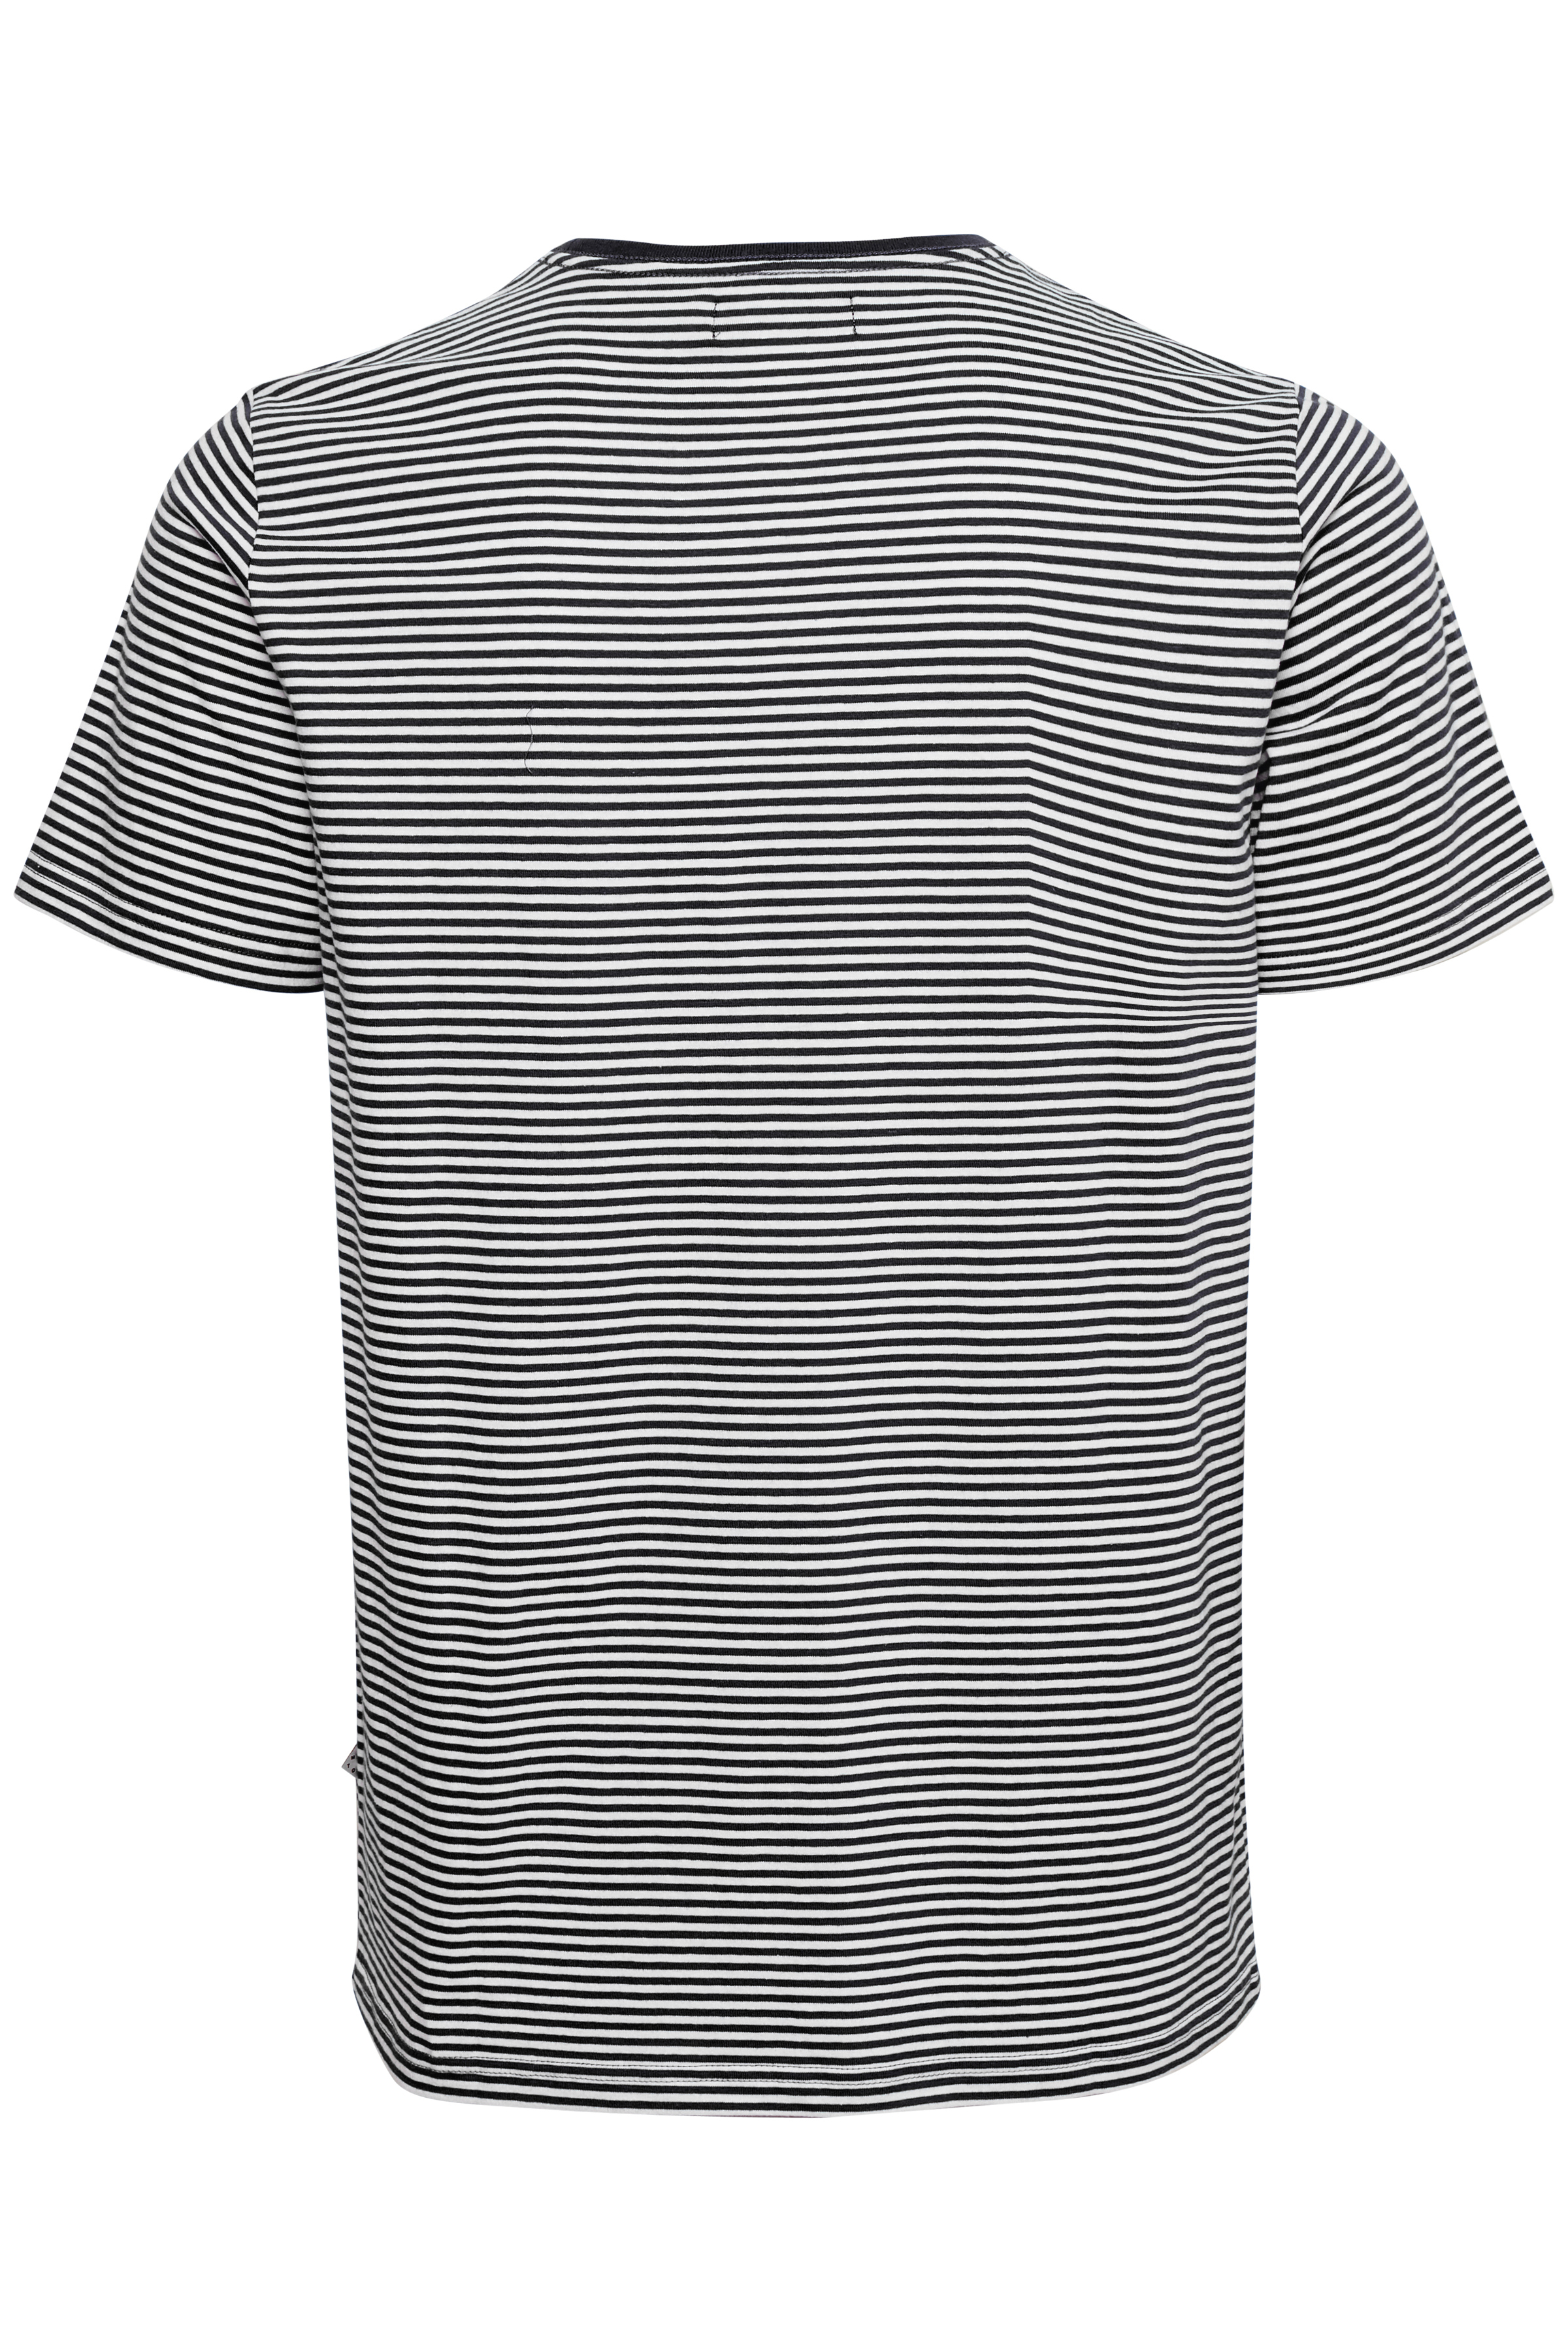 Dark Navy Jermane T-shirt – Køb Dark Navy Jermane T-shirt fra str. S-XXL her